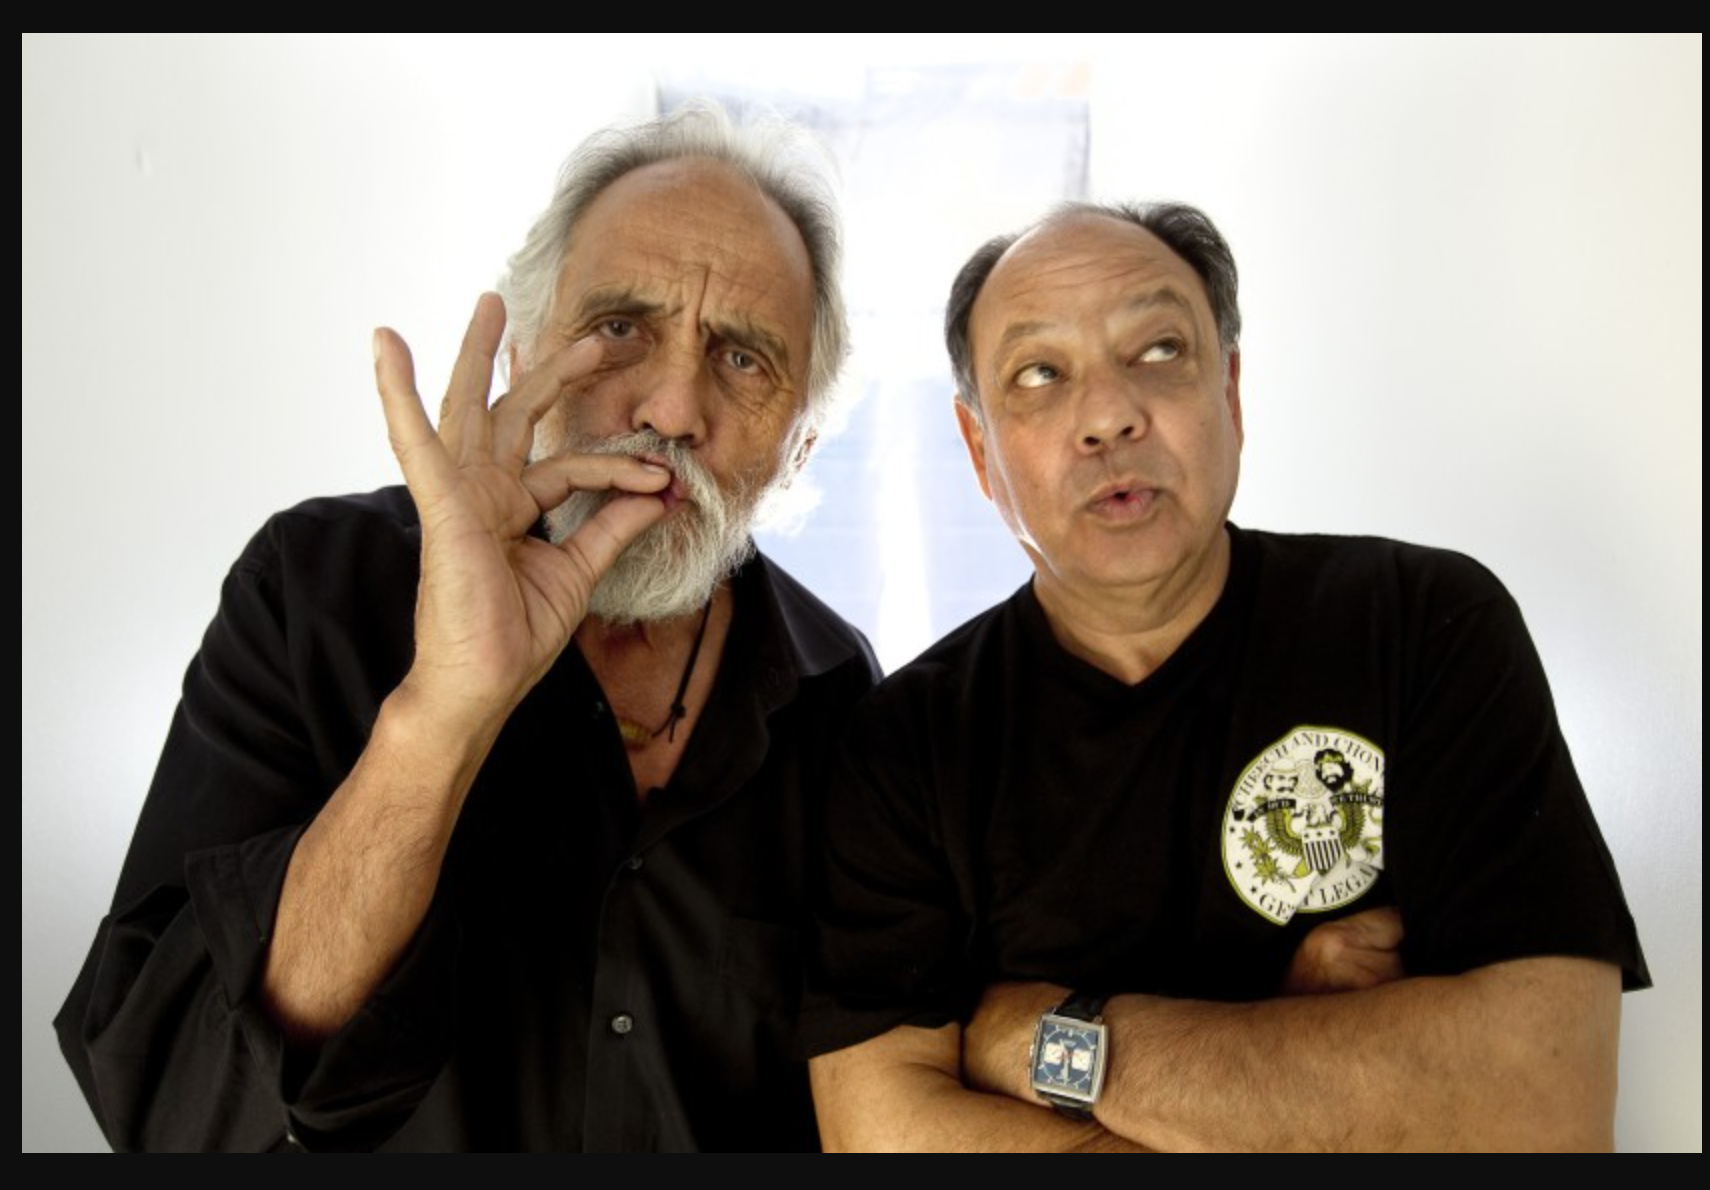 Cheech and Chong at The Vault 4/20/21